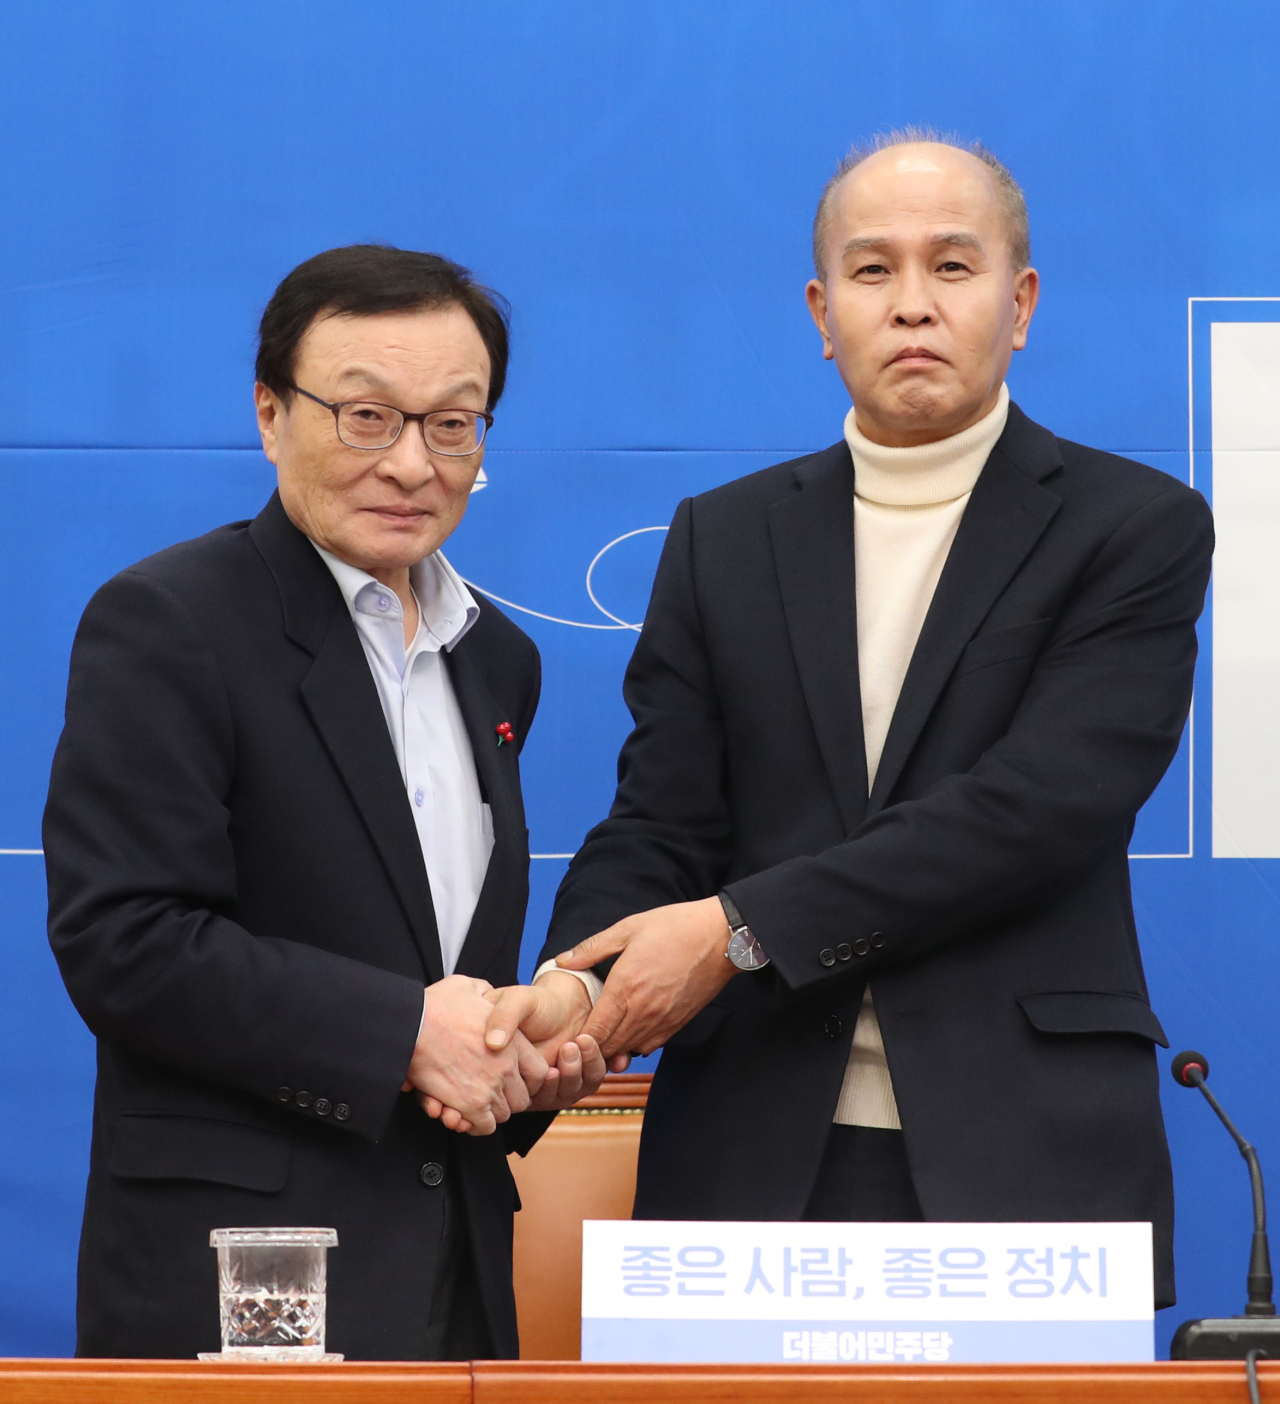 Democratic Party of Korea leader Lee Hae-chan (left) and Kakao Bank co-CEO Lee Yong-woo poses for a photo at a ceremony in the National Assembly held on Sunday. (Yonhap)